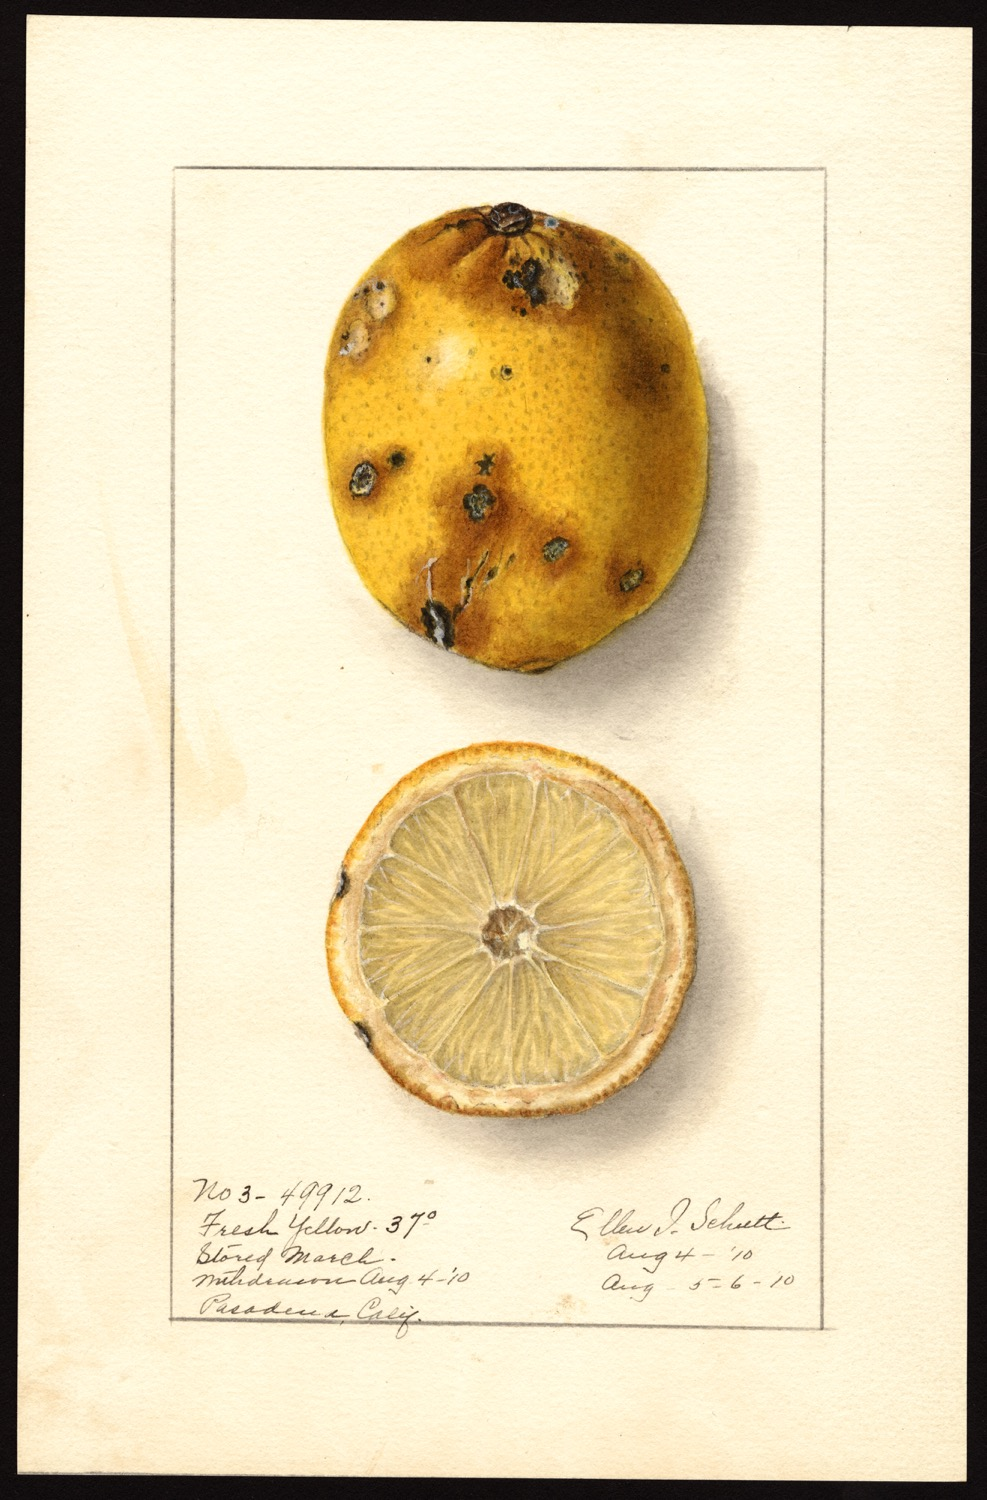 Ellen Isham Schutt, limone, 1910, (fonte: U.S. Department of Agriculture Pomological Watercolor Collection. Rare and Special Collections, National Agricultural Library, Beltsville, MD 20705)